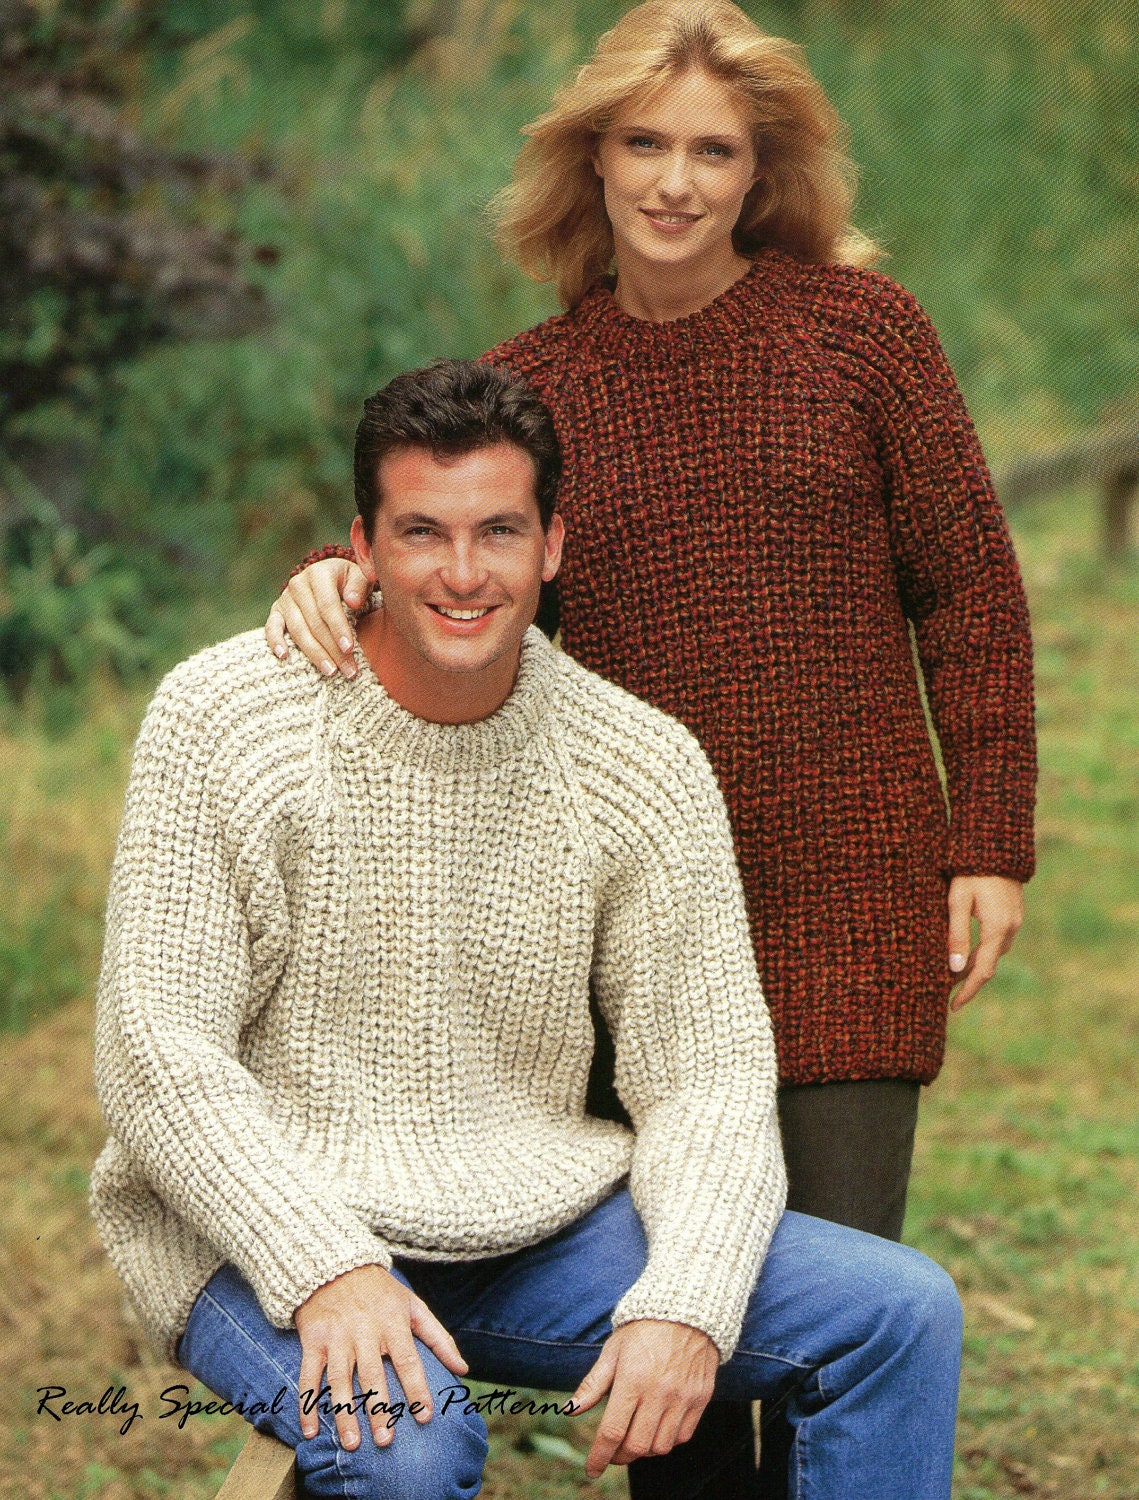 Knitting Patterns Fisherman s Rib Sweater : Items similar to Classic Sweater Fishermans Rib Vintage ...